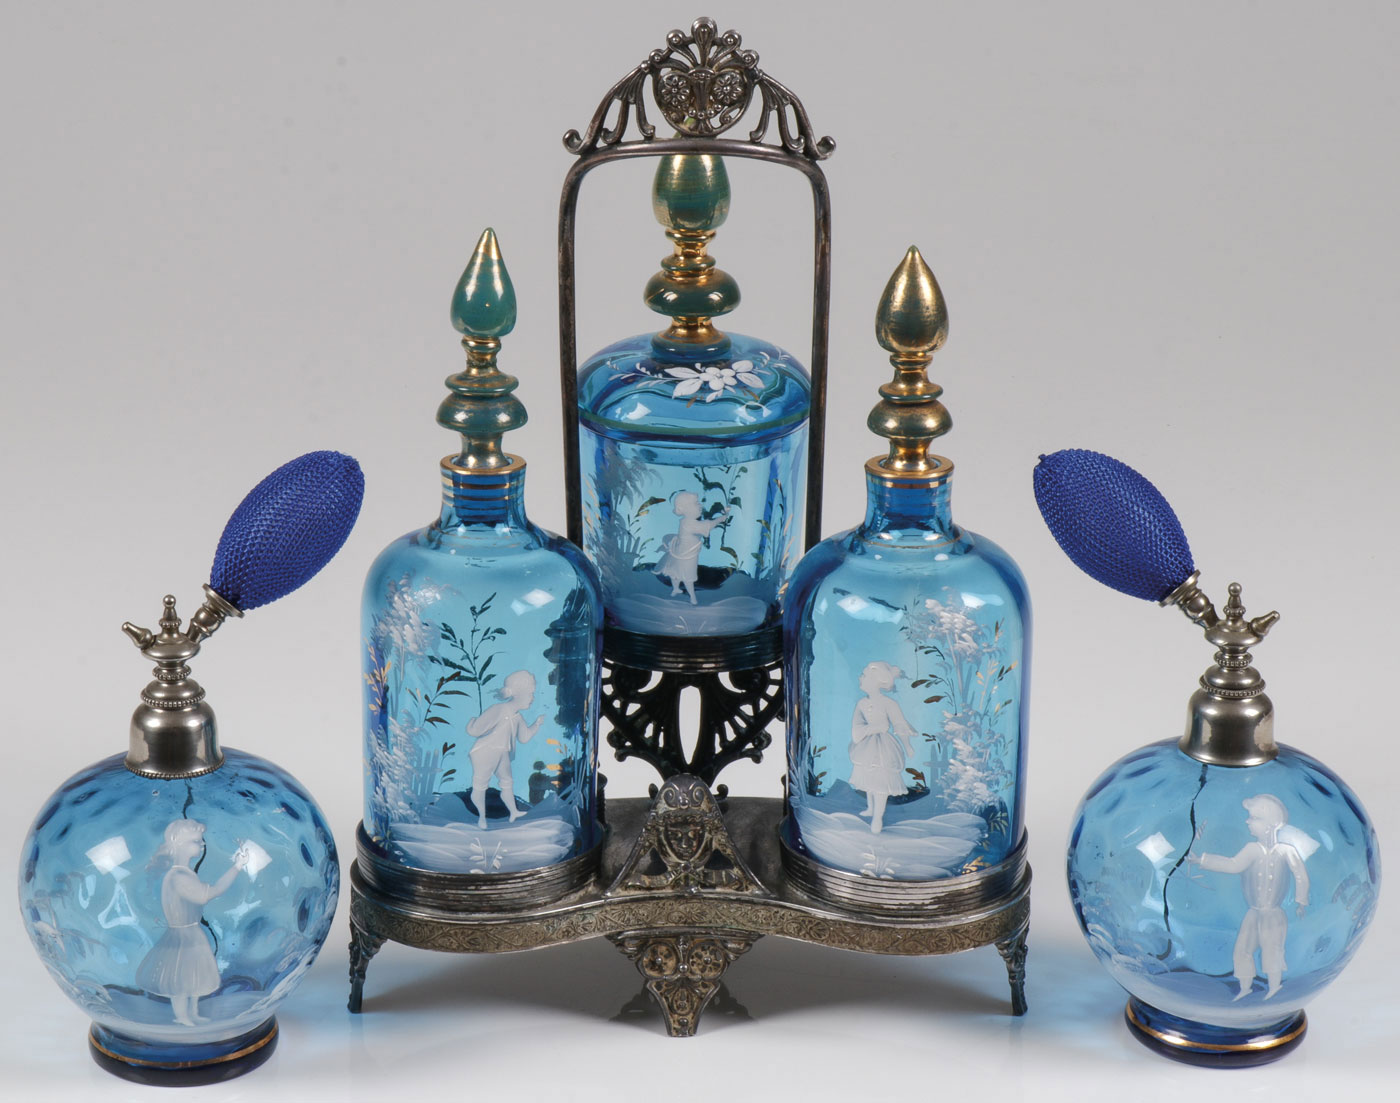 Lot 22 - MARY GREGORY SAPPHIRE BLUE PERFUMES, C. 1900